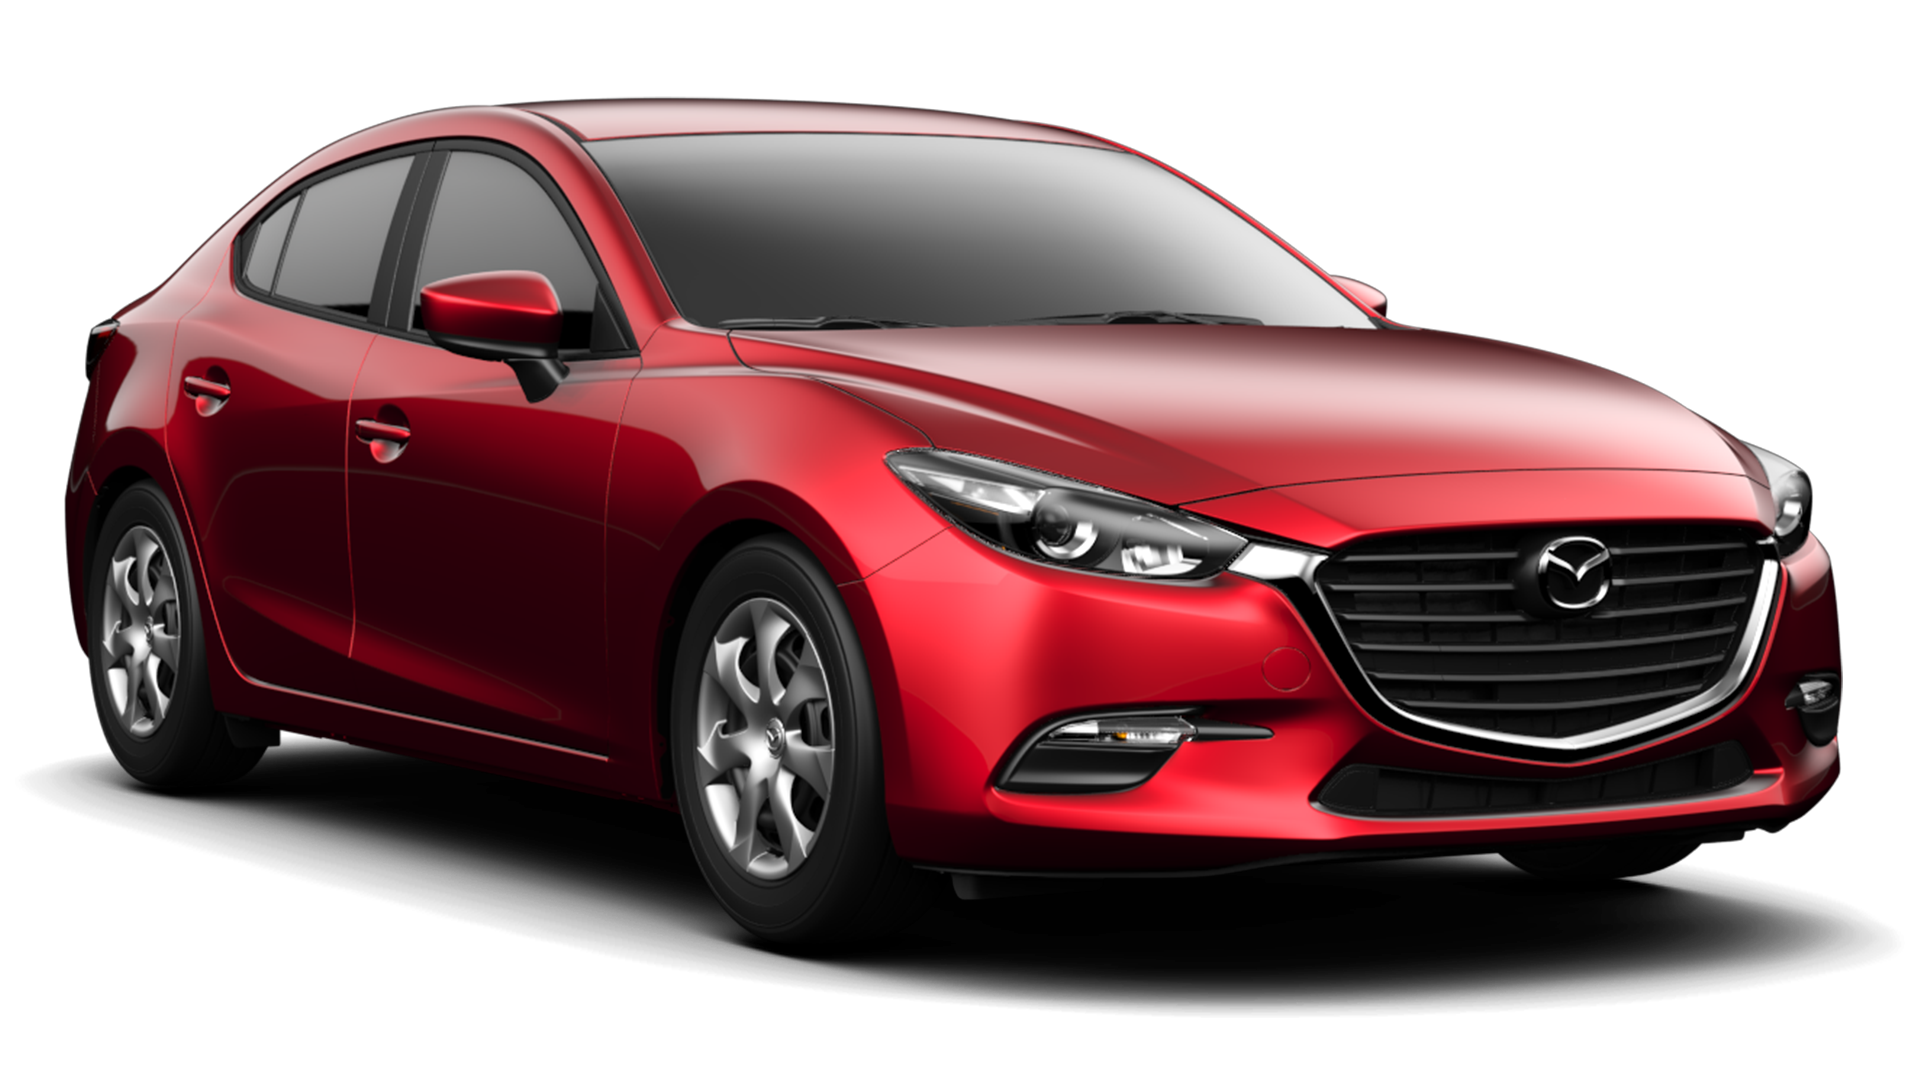 mazda 3 2017 berline compacte 4 portes mazda canada. Black Bedroom Furniture Sets. Home Design Ideas